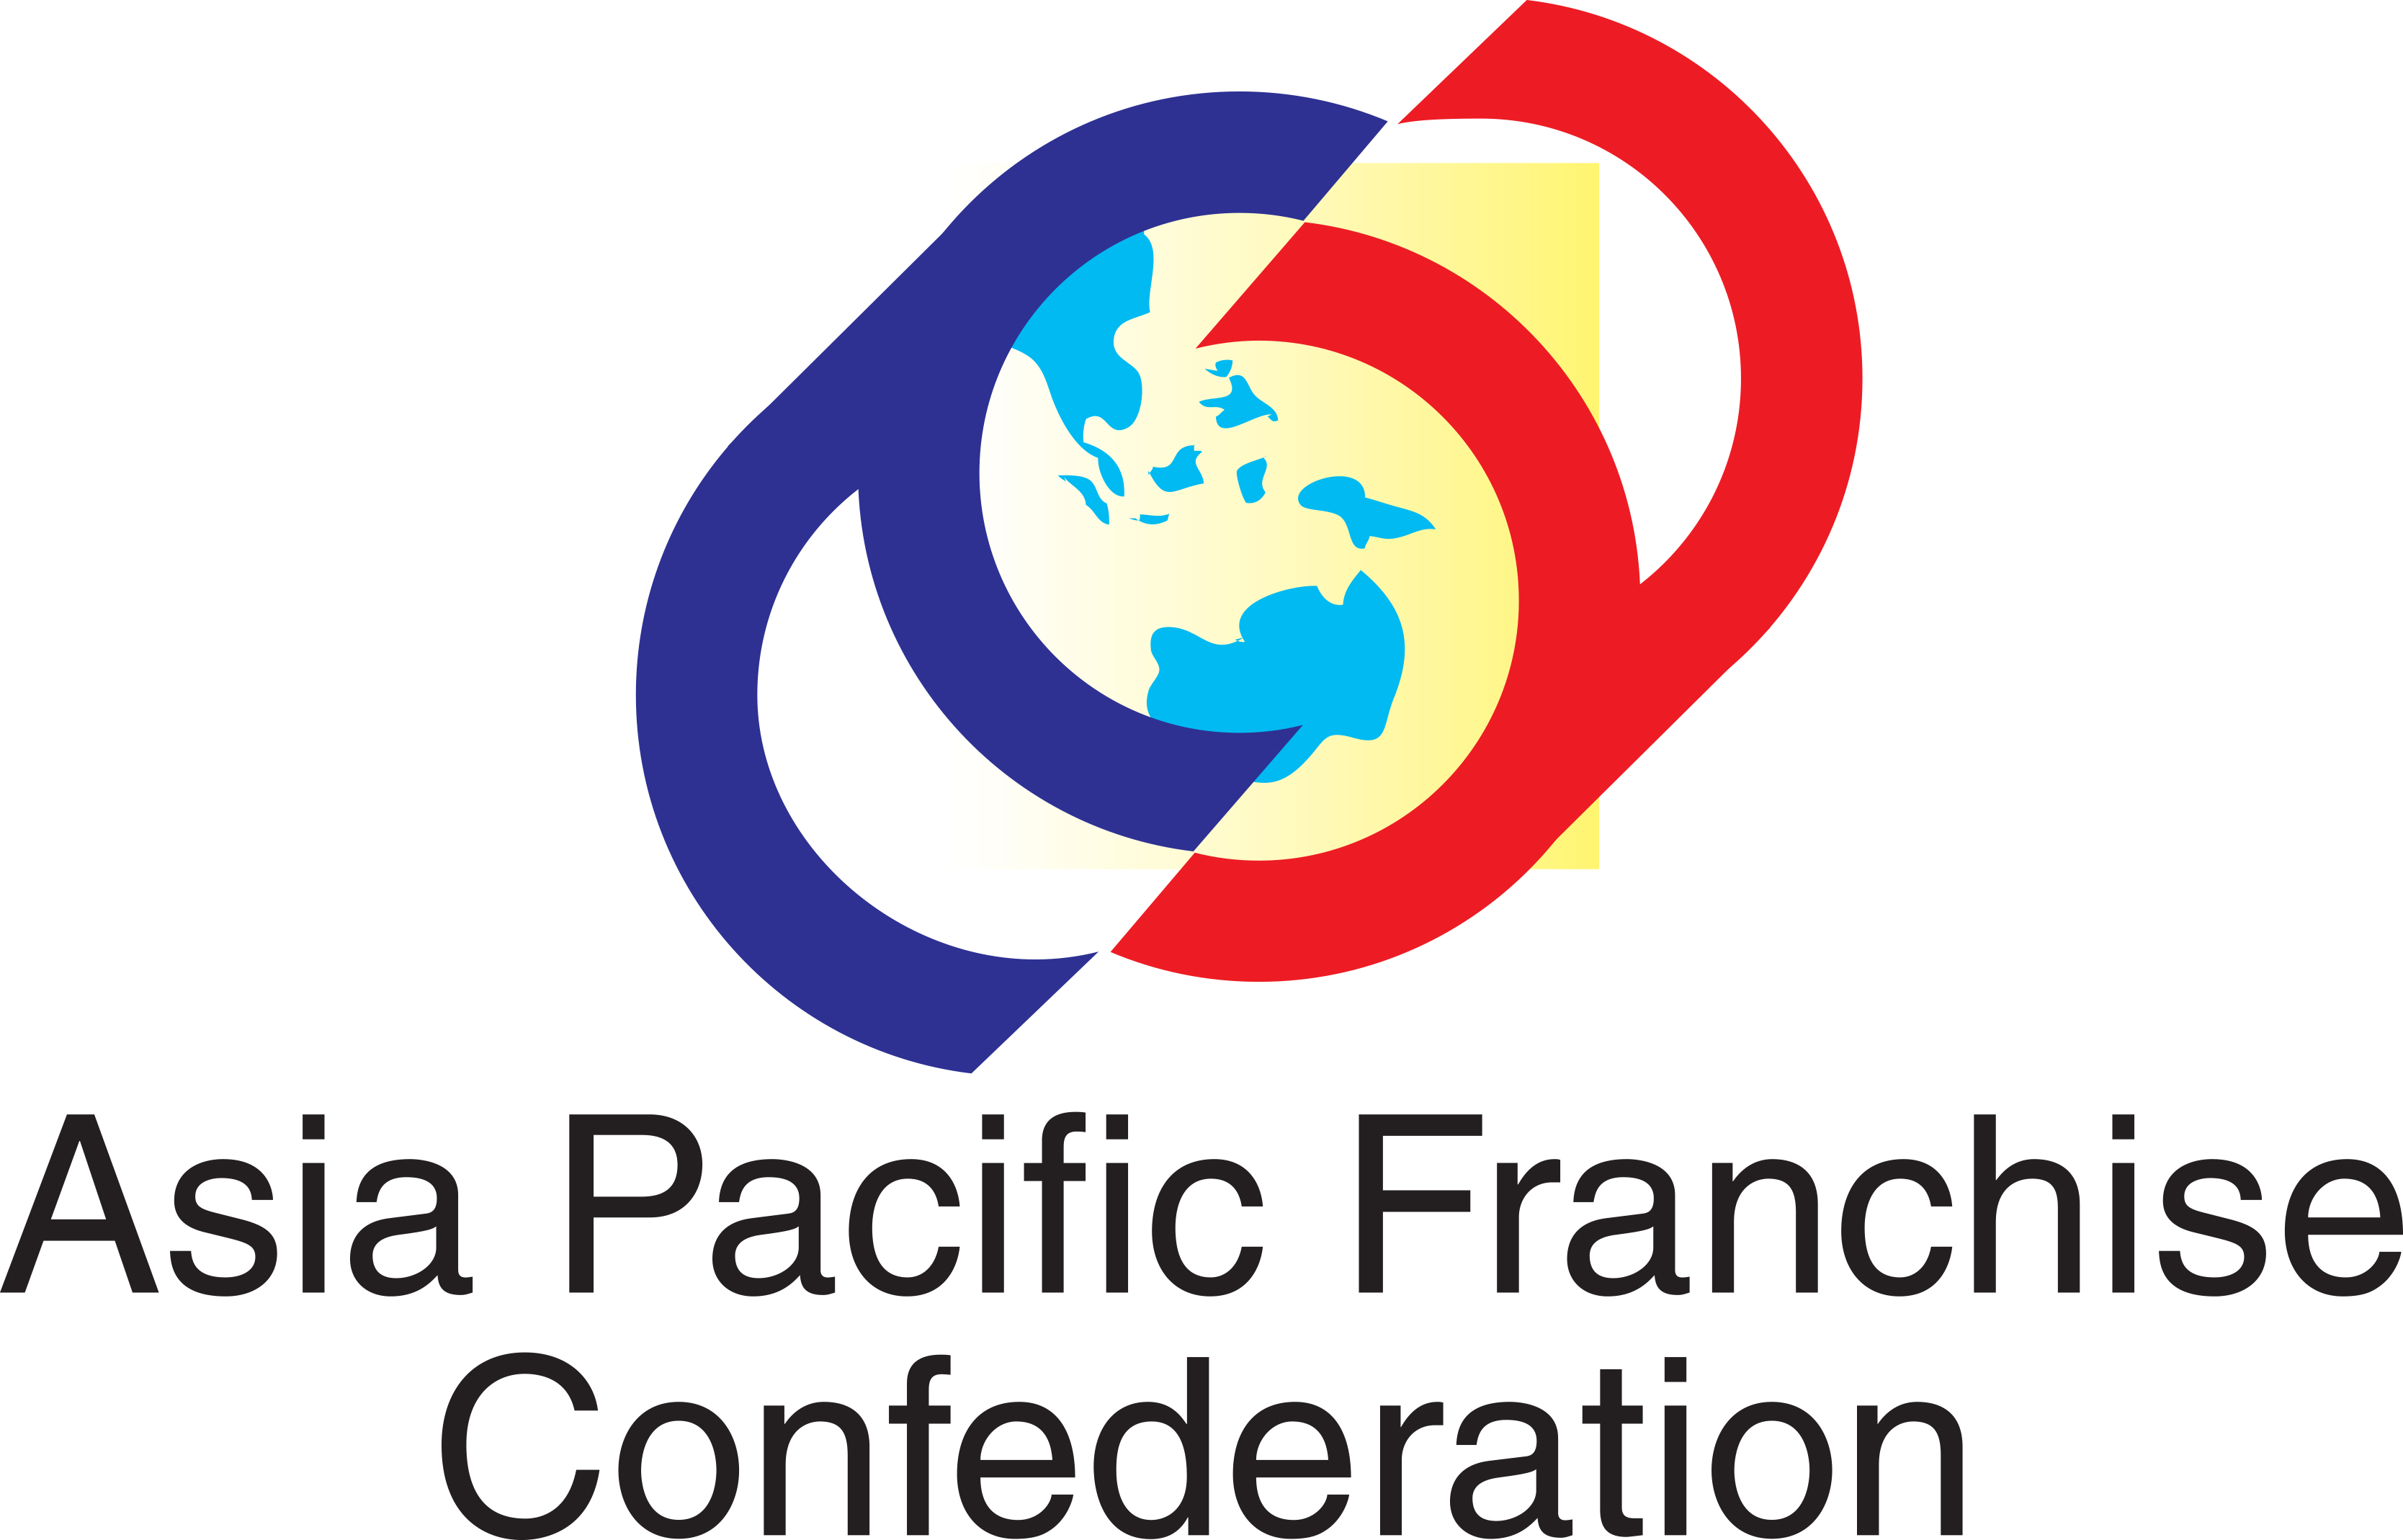 logo for Asia Pacific Franchise Confederation